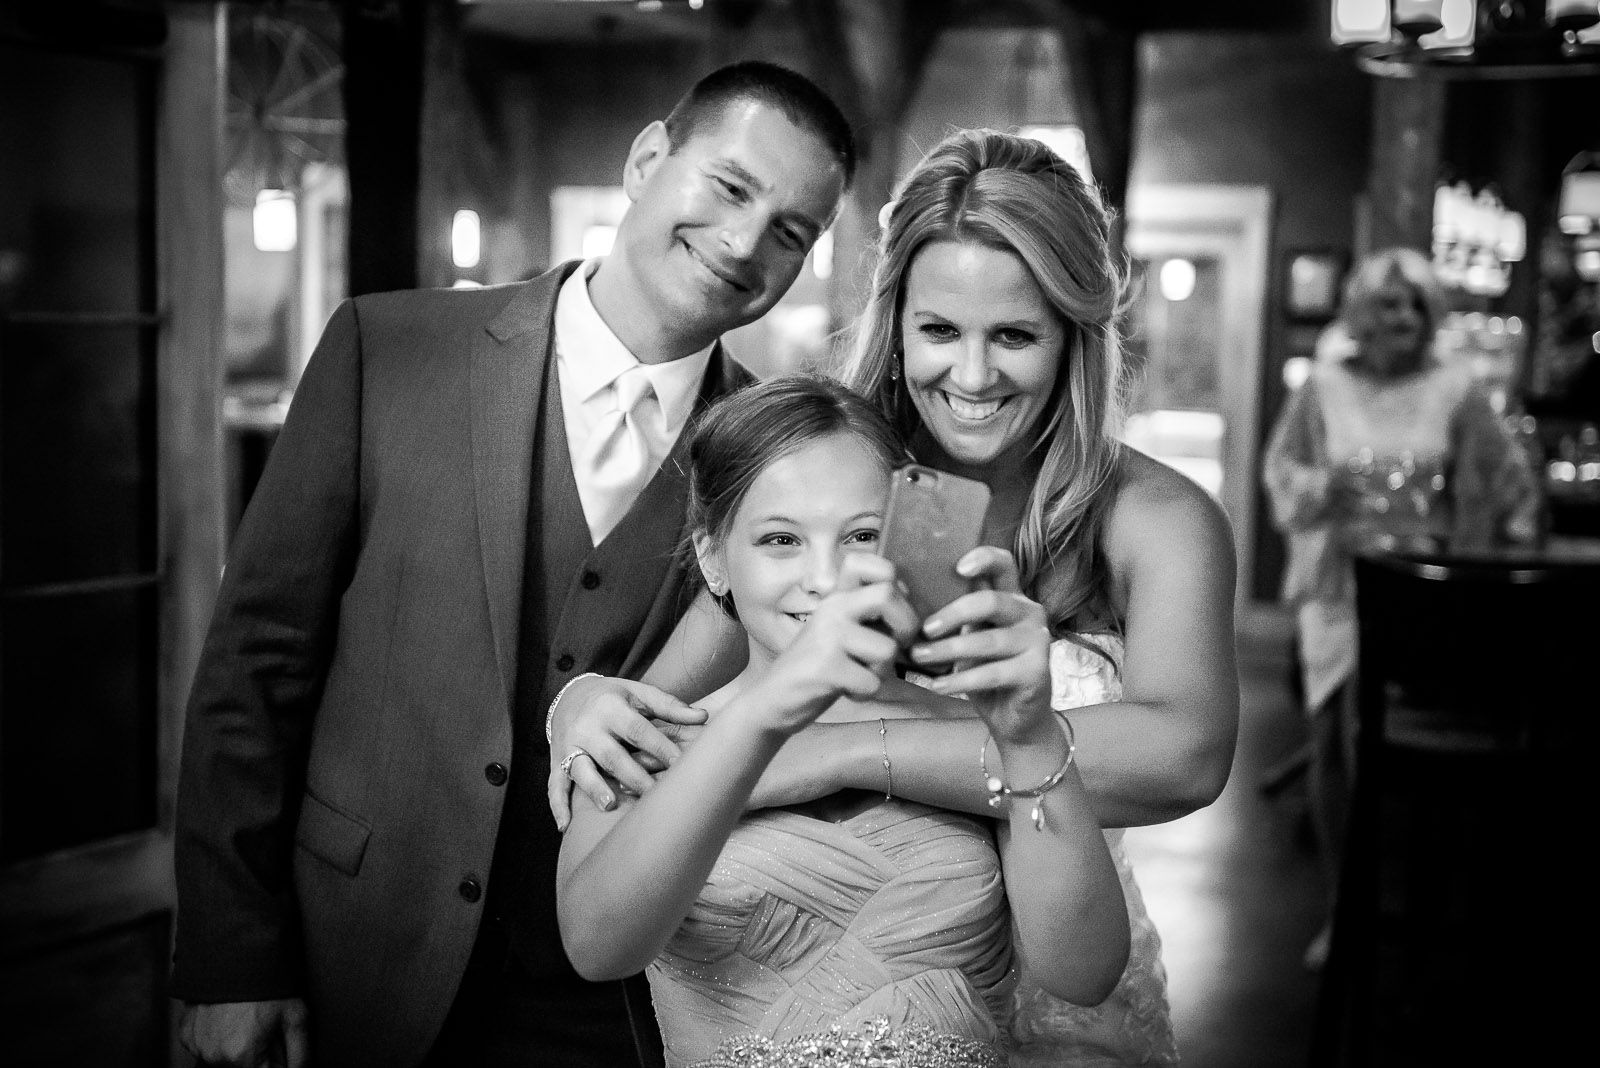 Eric_and_Christy_Photography_Blog_2016_Best_Wedding_Moments-51